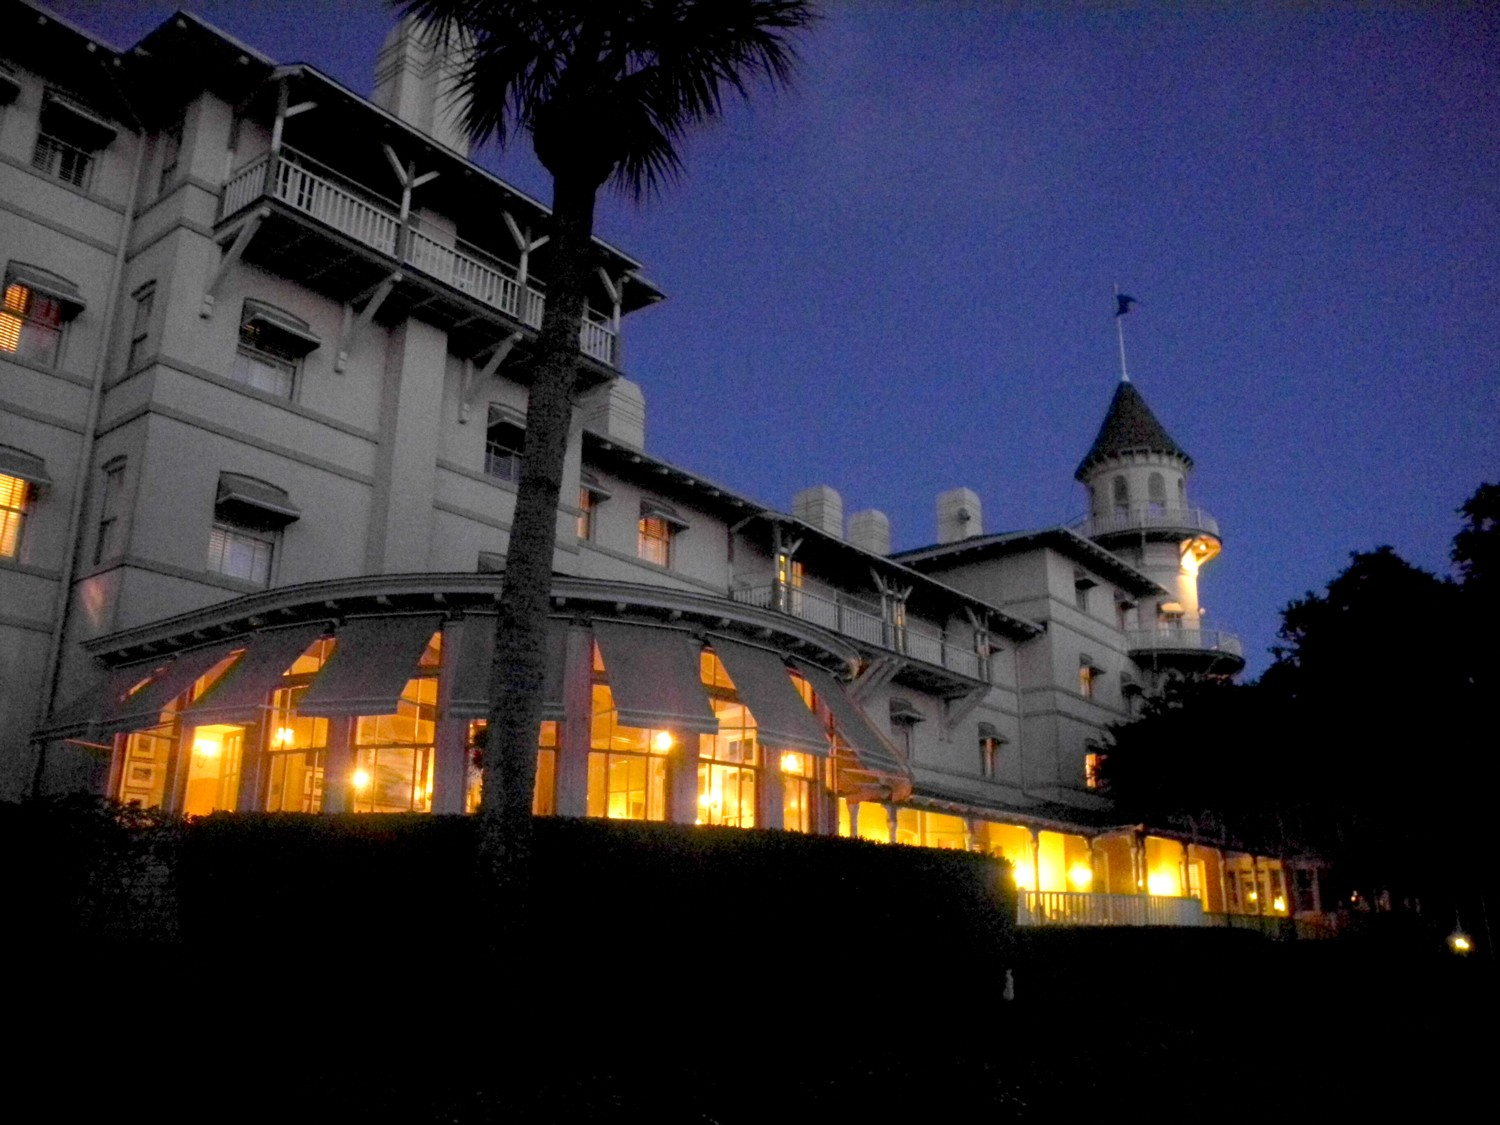 Top 25 Most Haunted Historic Hotels for 2017 Named by Historic Hotels of America